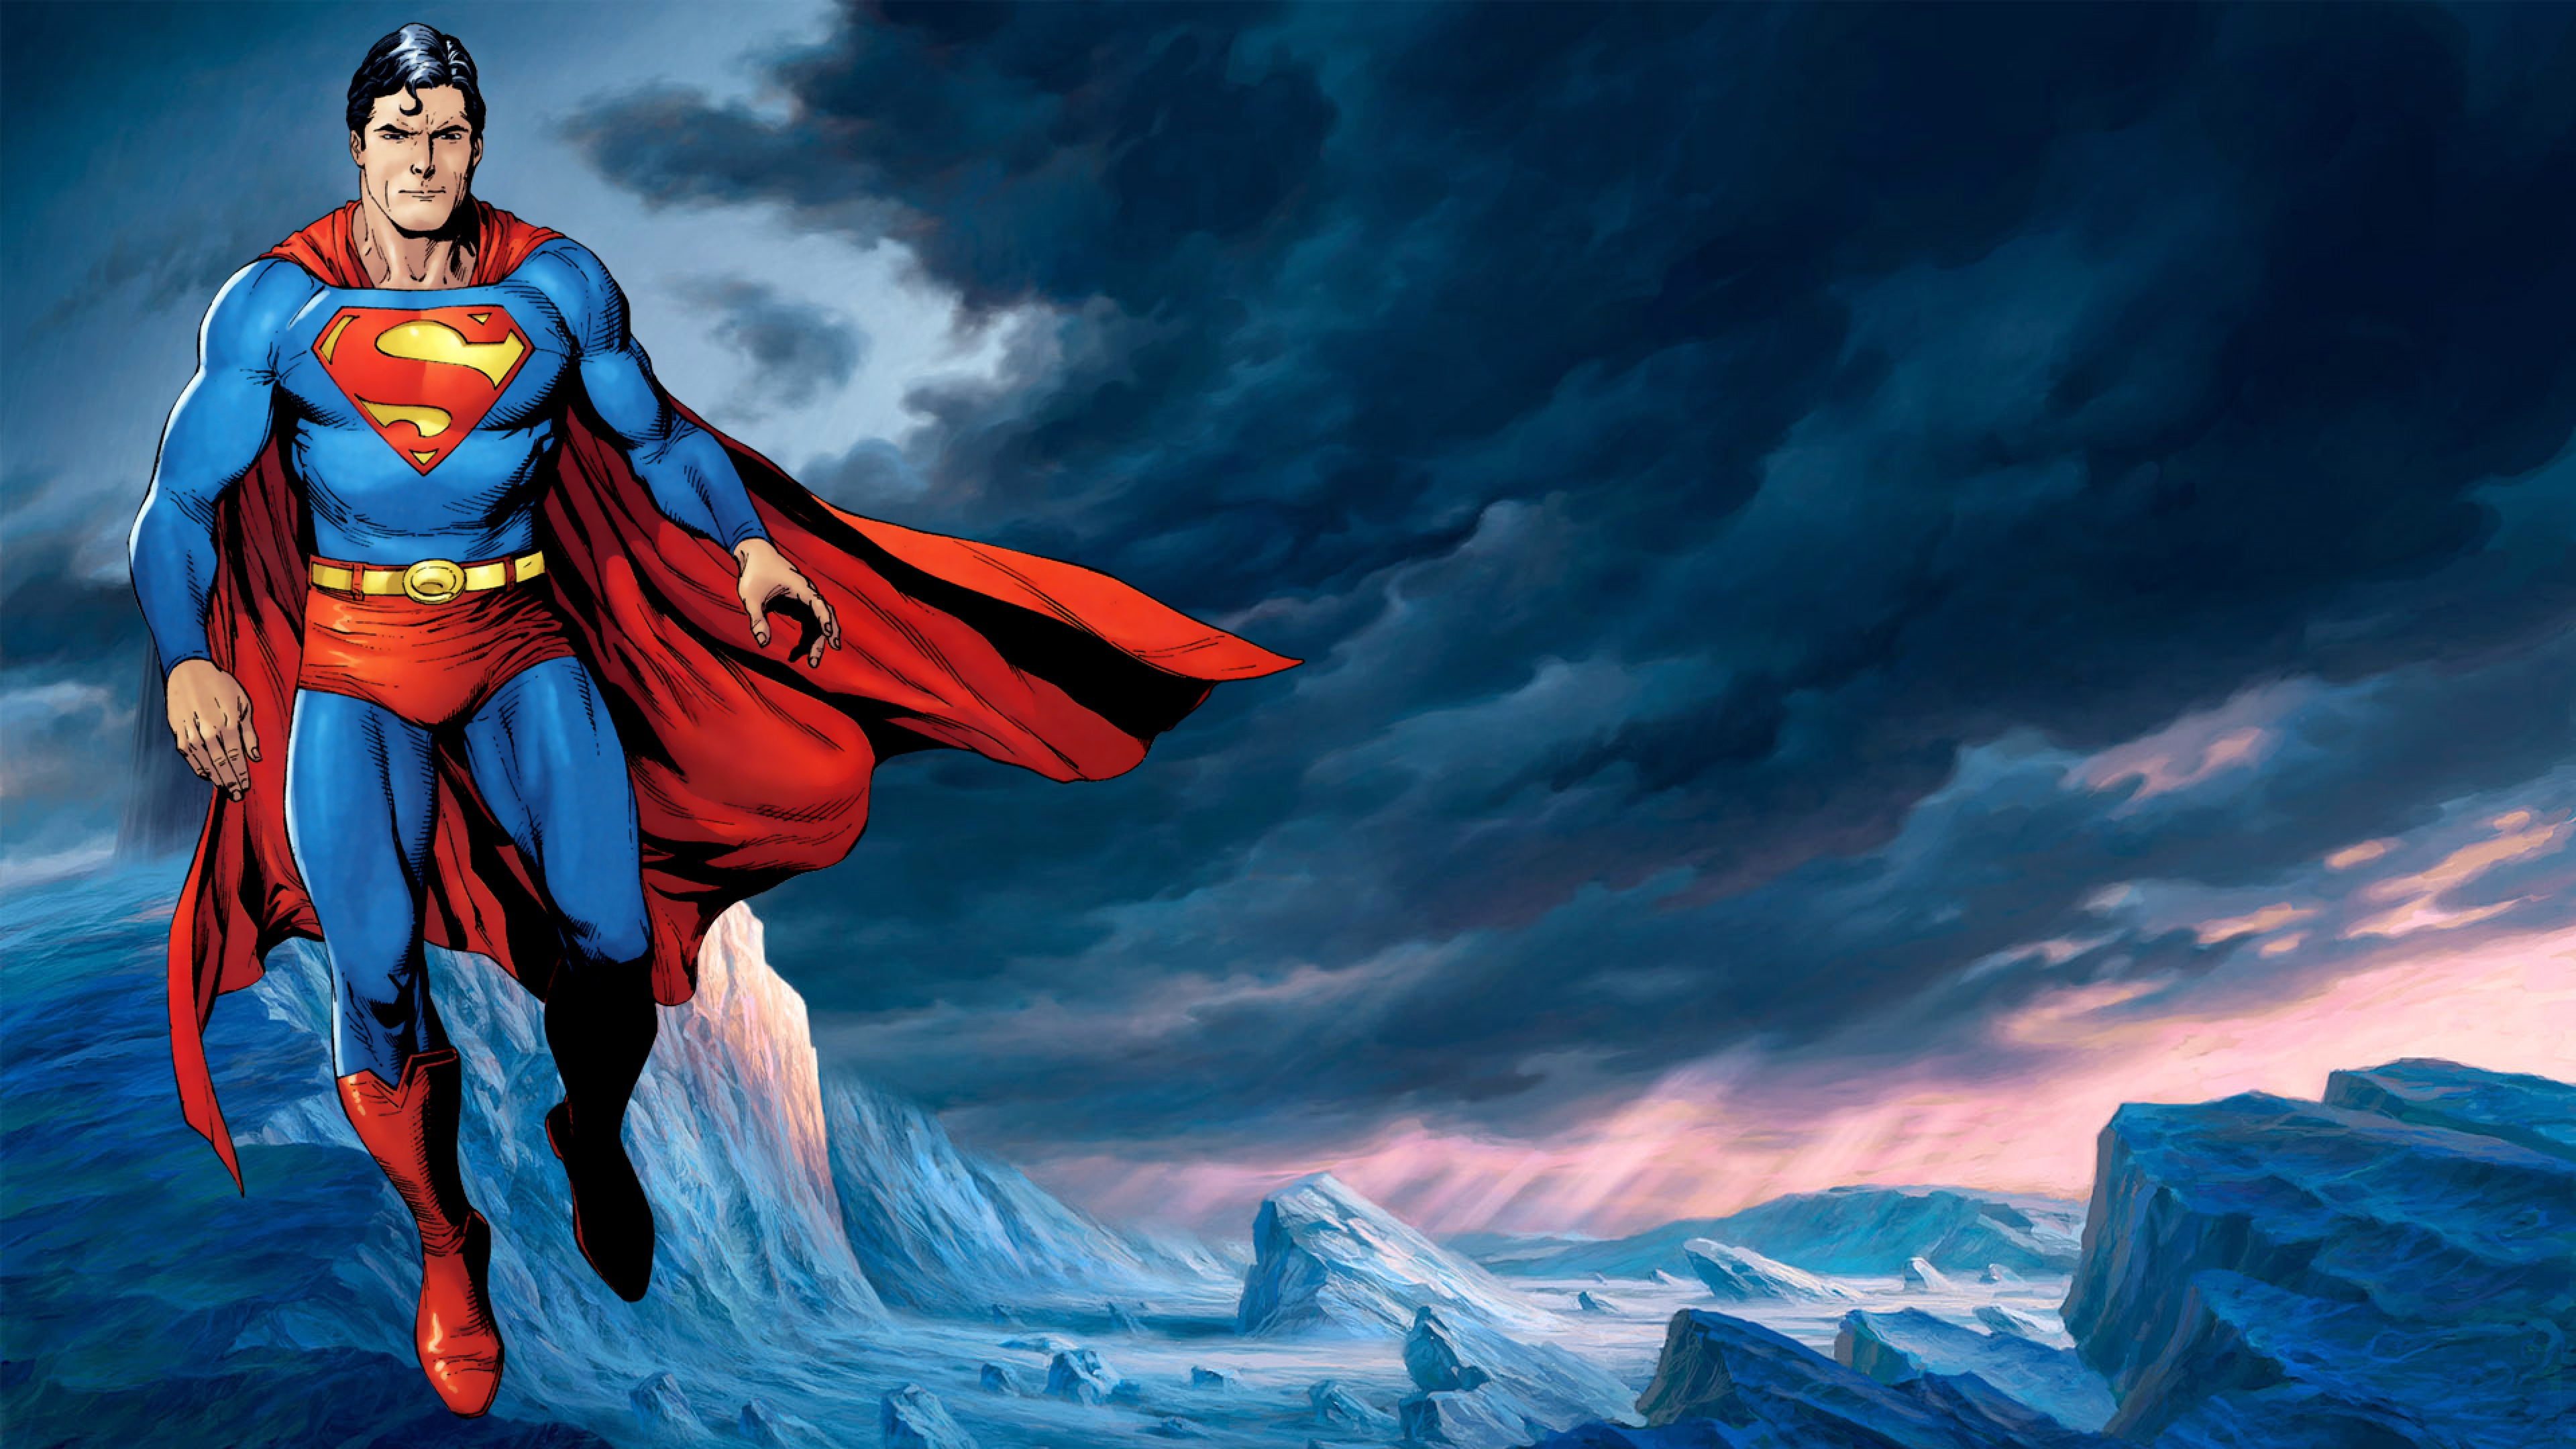 action comics dc comics HD   HD Wallpapers Ultra HD Wallpapers 3840x2160